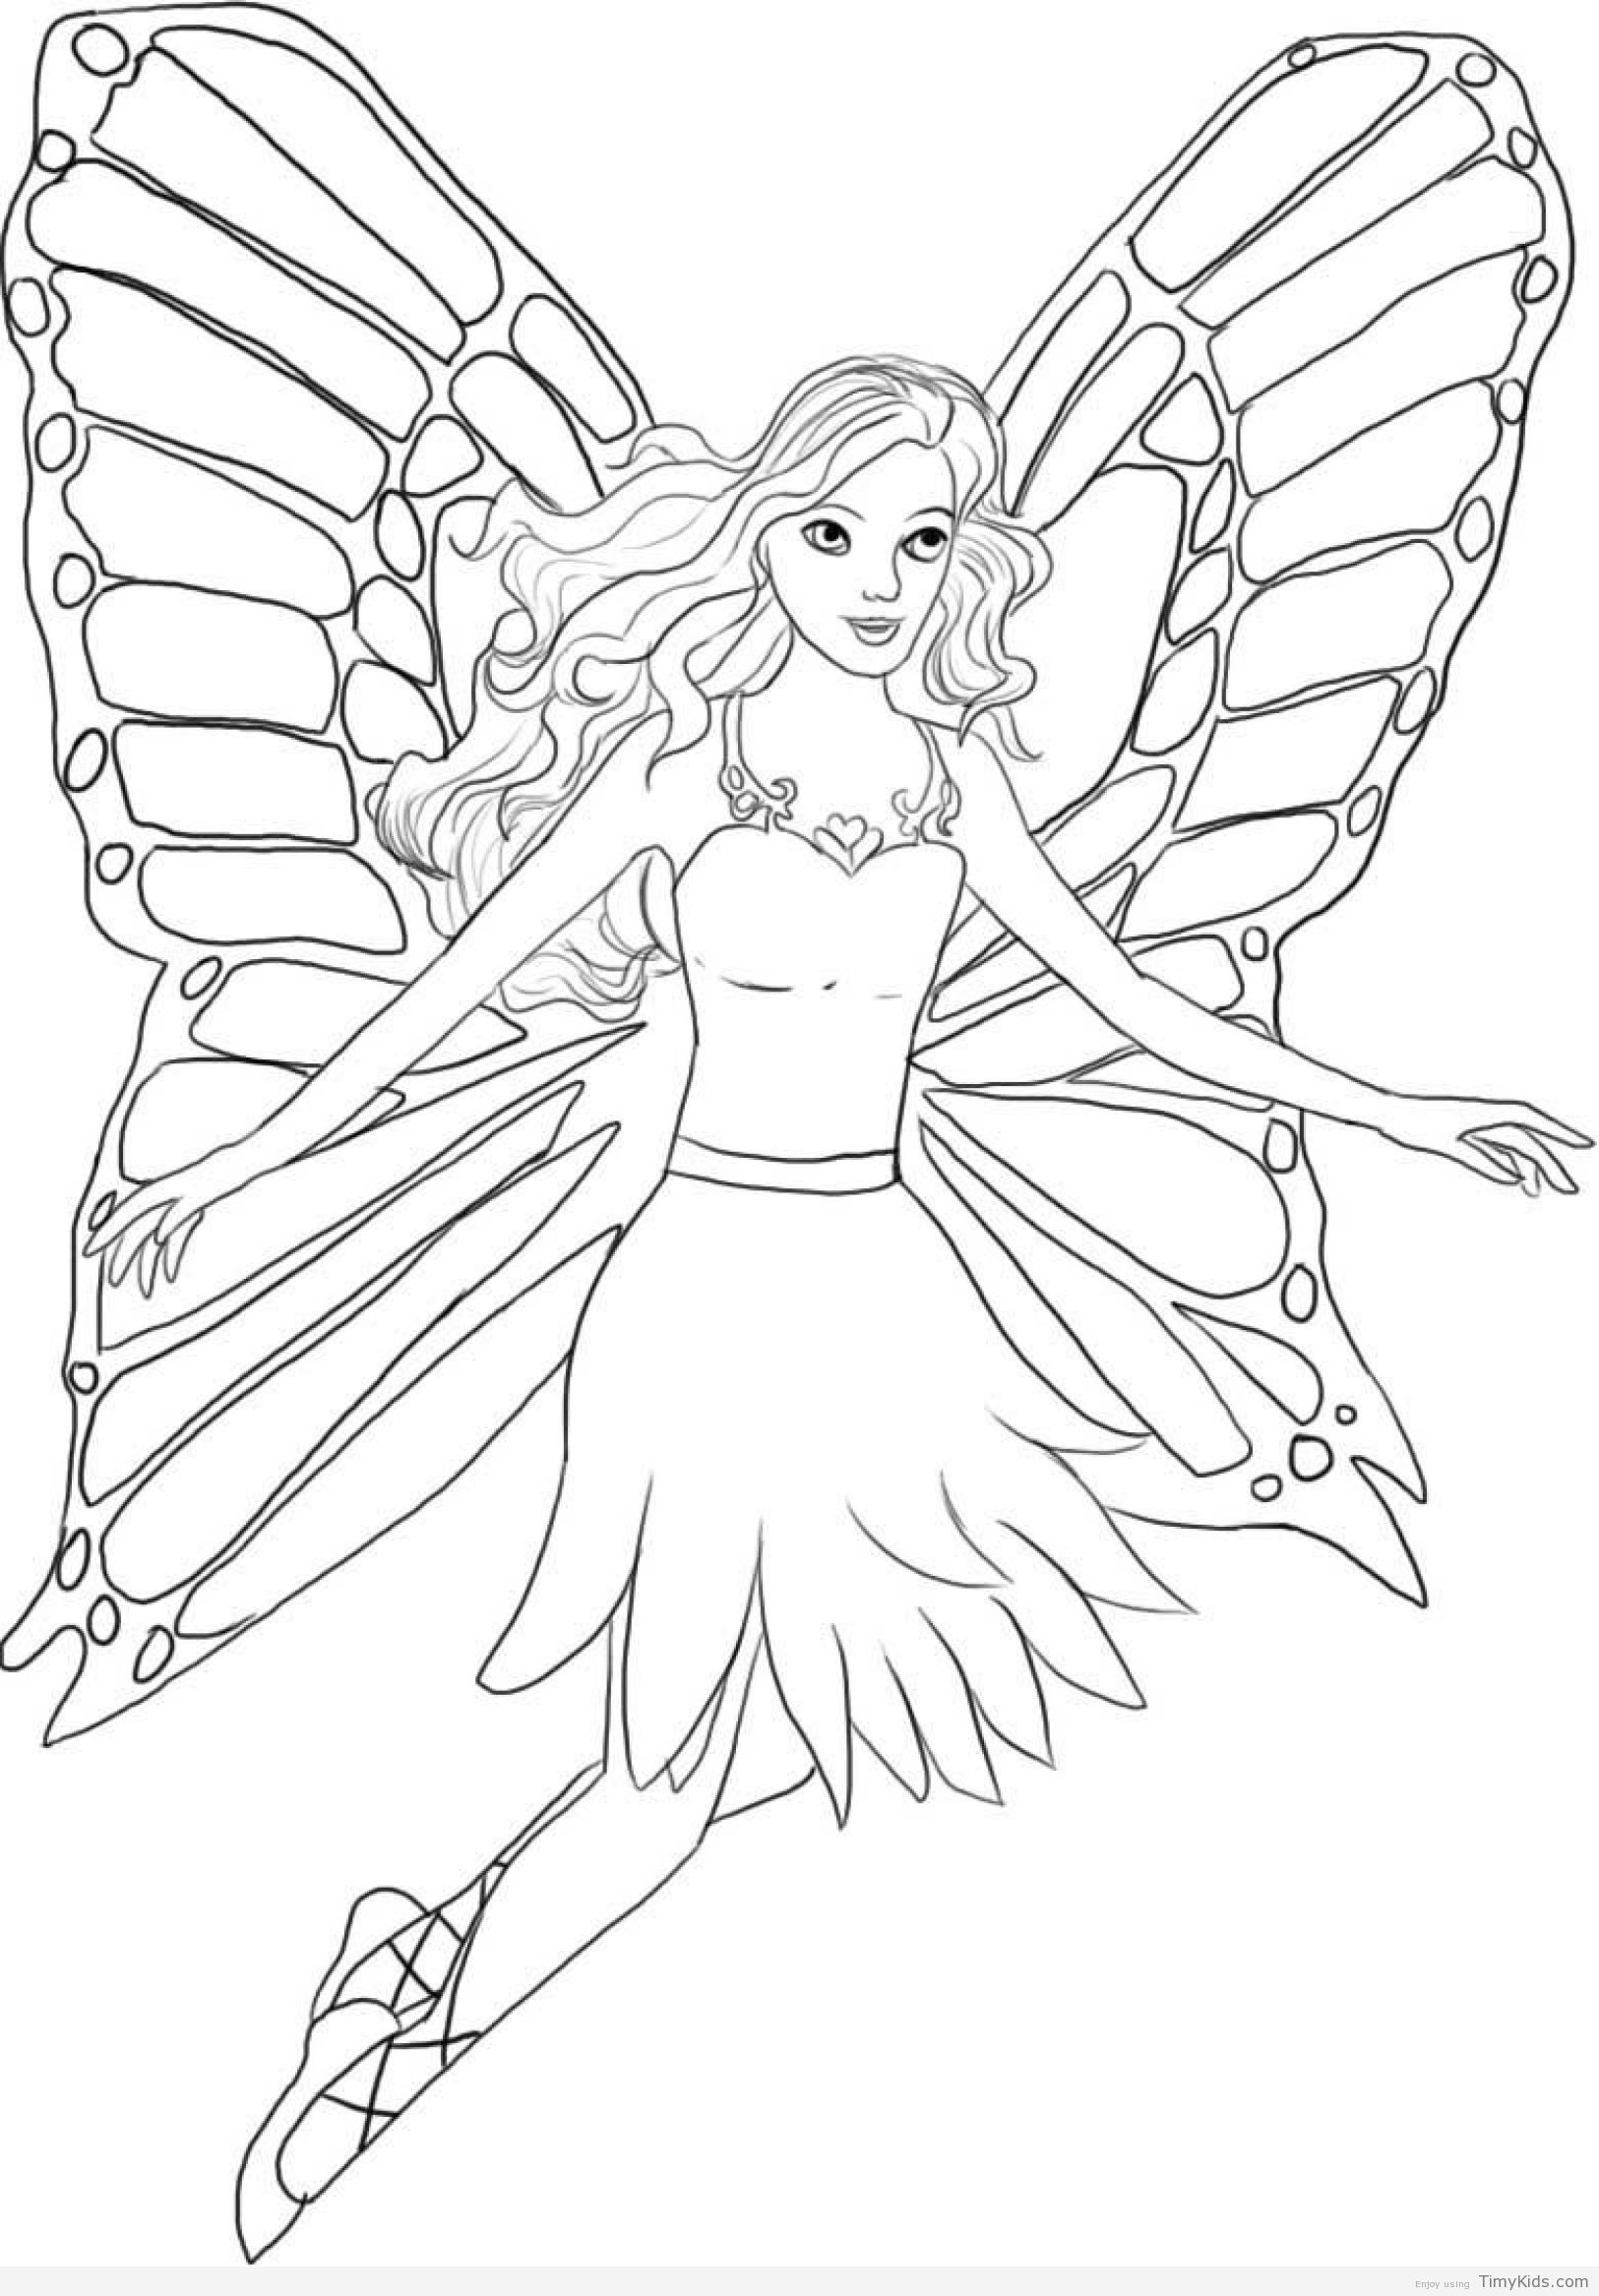 httptimykidscomfairy princess coloring pagehtml - Fairy Princess Coloring Pages